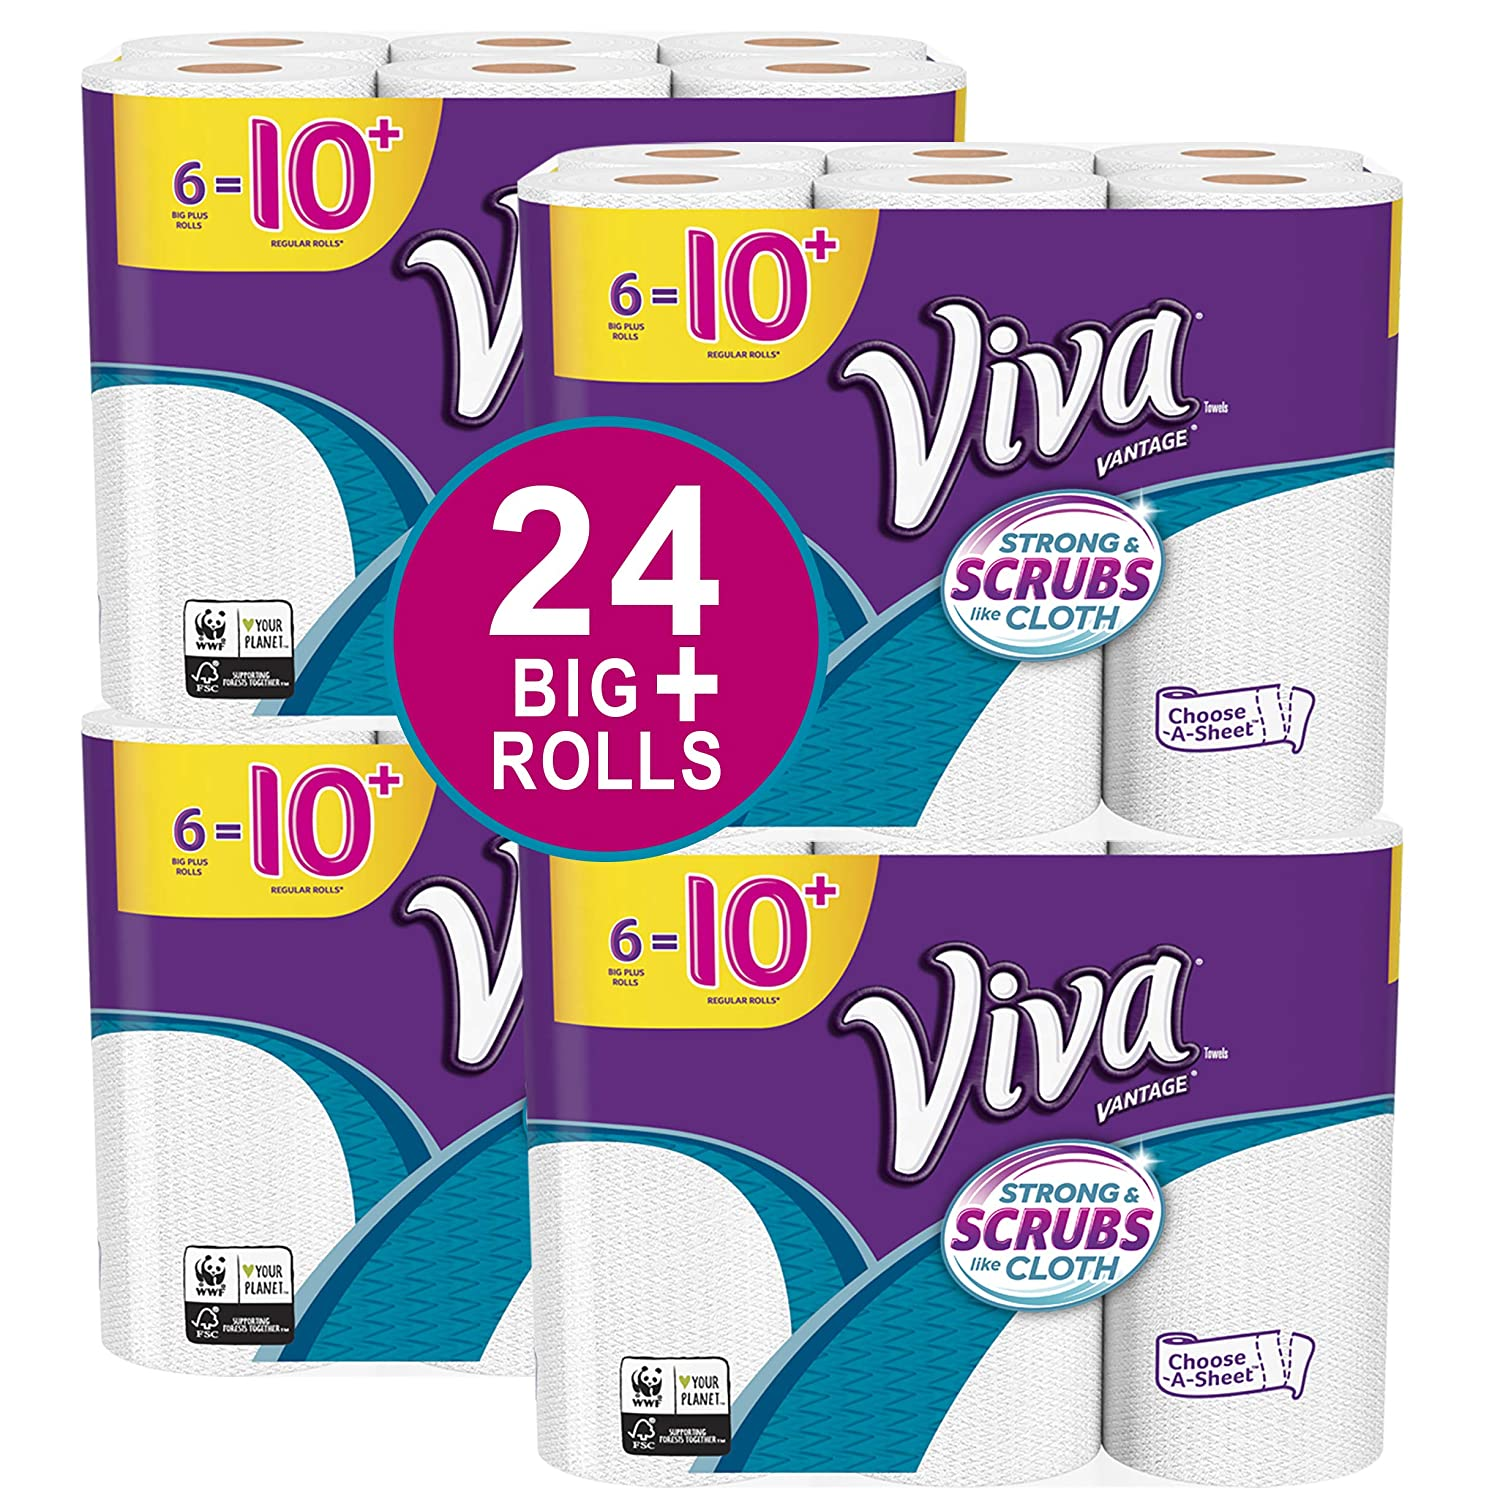 VIVA Vantage Choose-A-Sheet* Paper Towels, White, Big Plus Roll, 24 Rolls, Packaging May Vary Kimberly-Clark Corp. 10036000470458